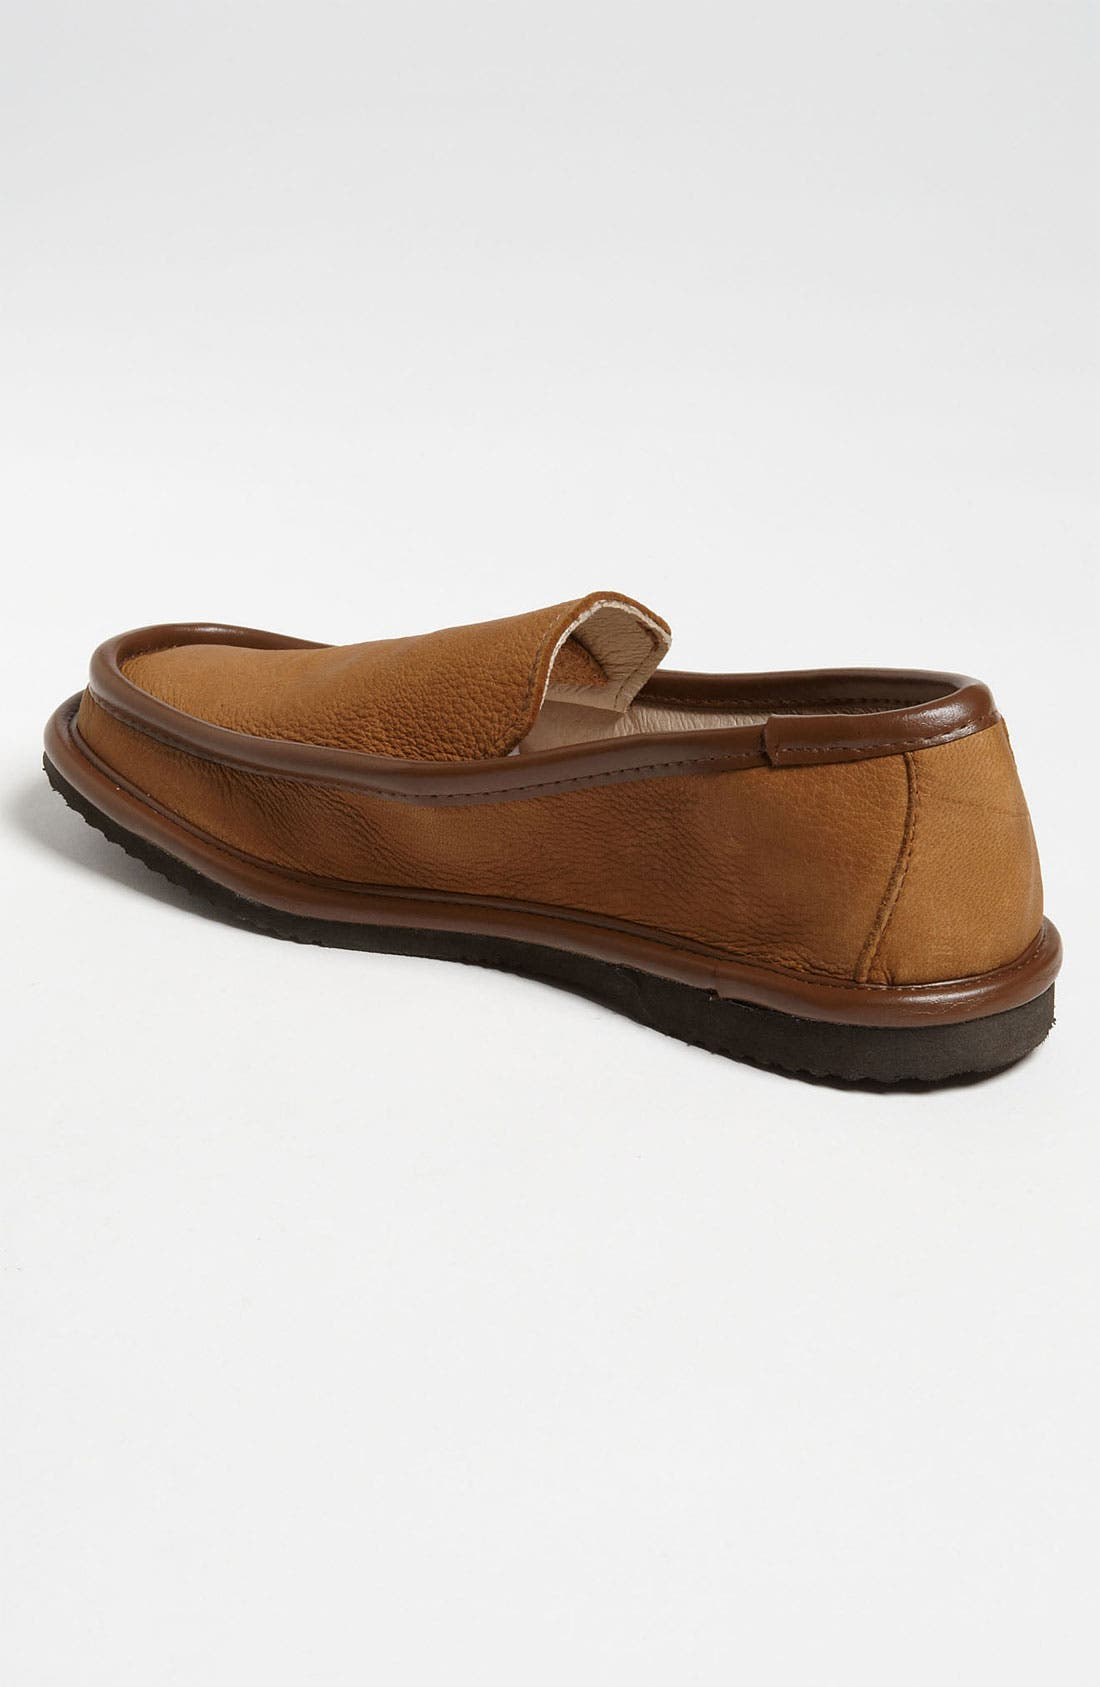 Alternate Image 2  - L.B. Evans 'Deerking' Slipper (Online Only)